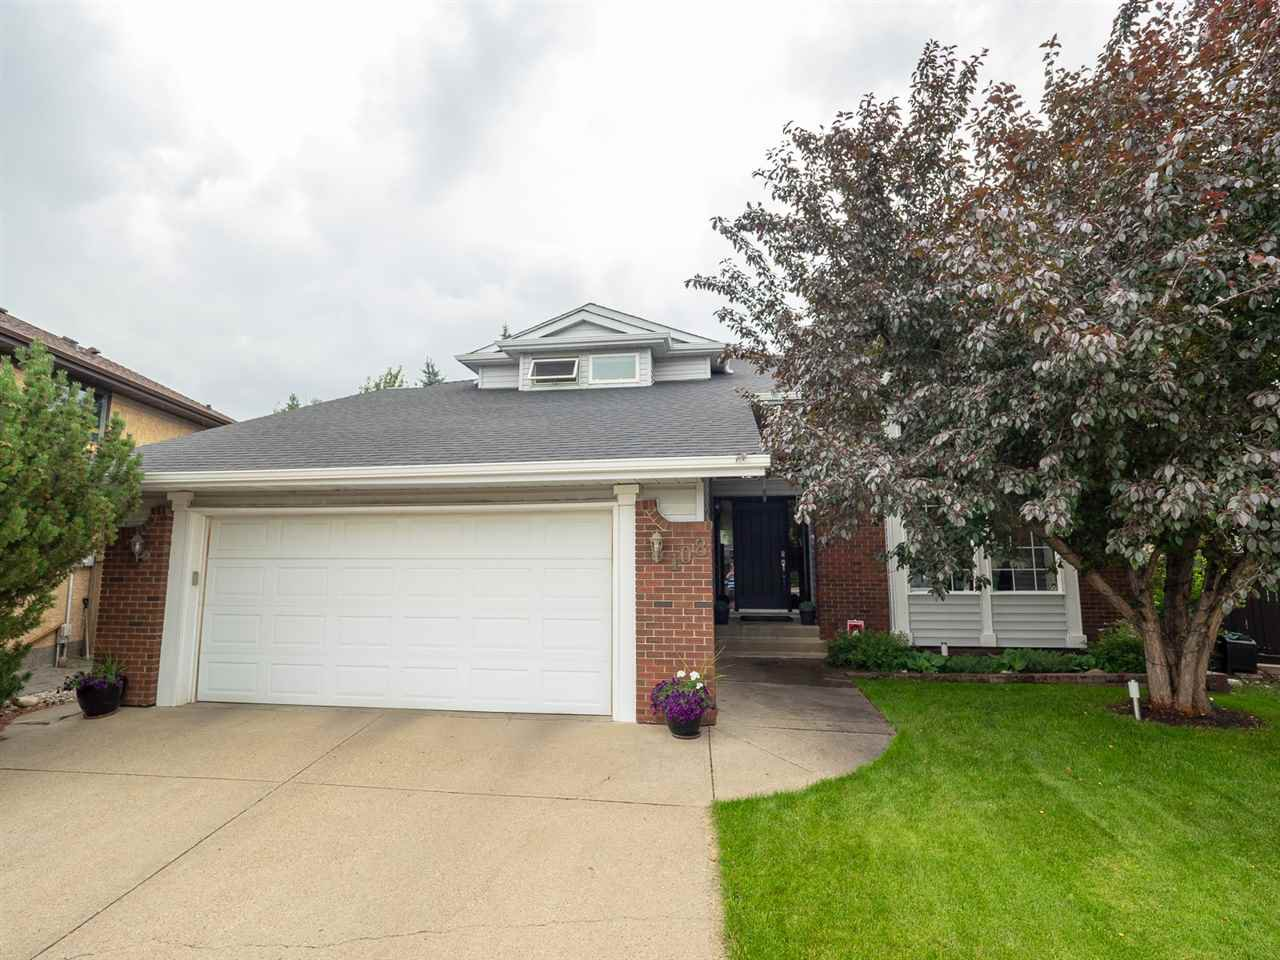 Main Photo: 108 WOLF WILLOW Close in Edmonton: Zone 22 House for sale : MLS®# E4167903